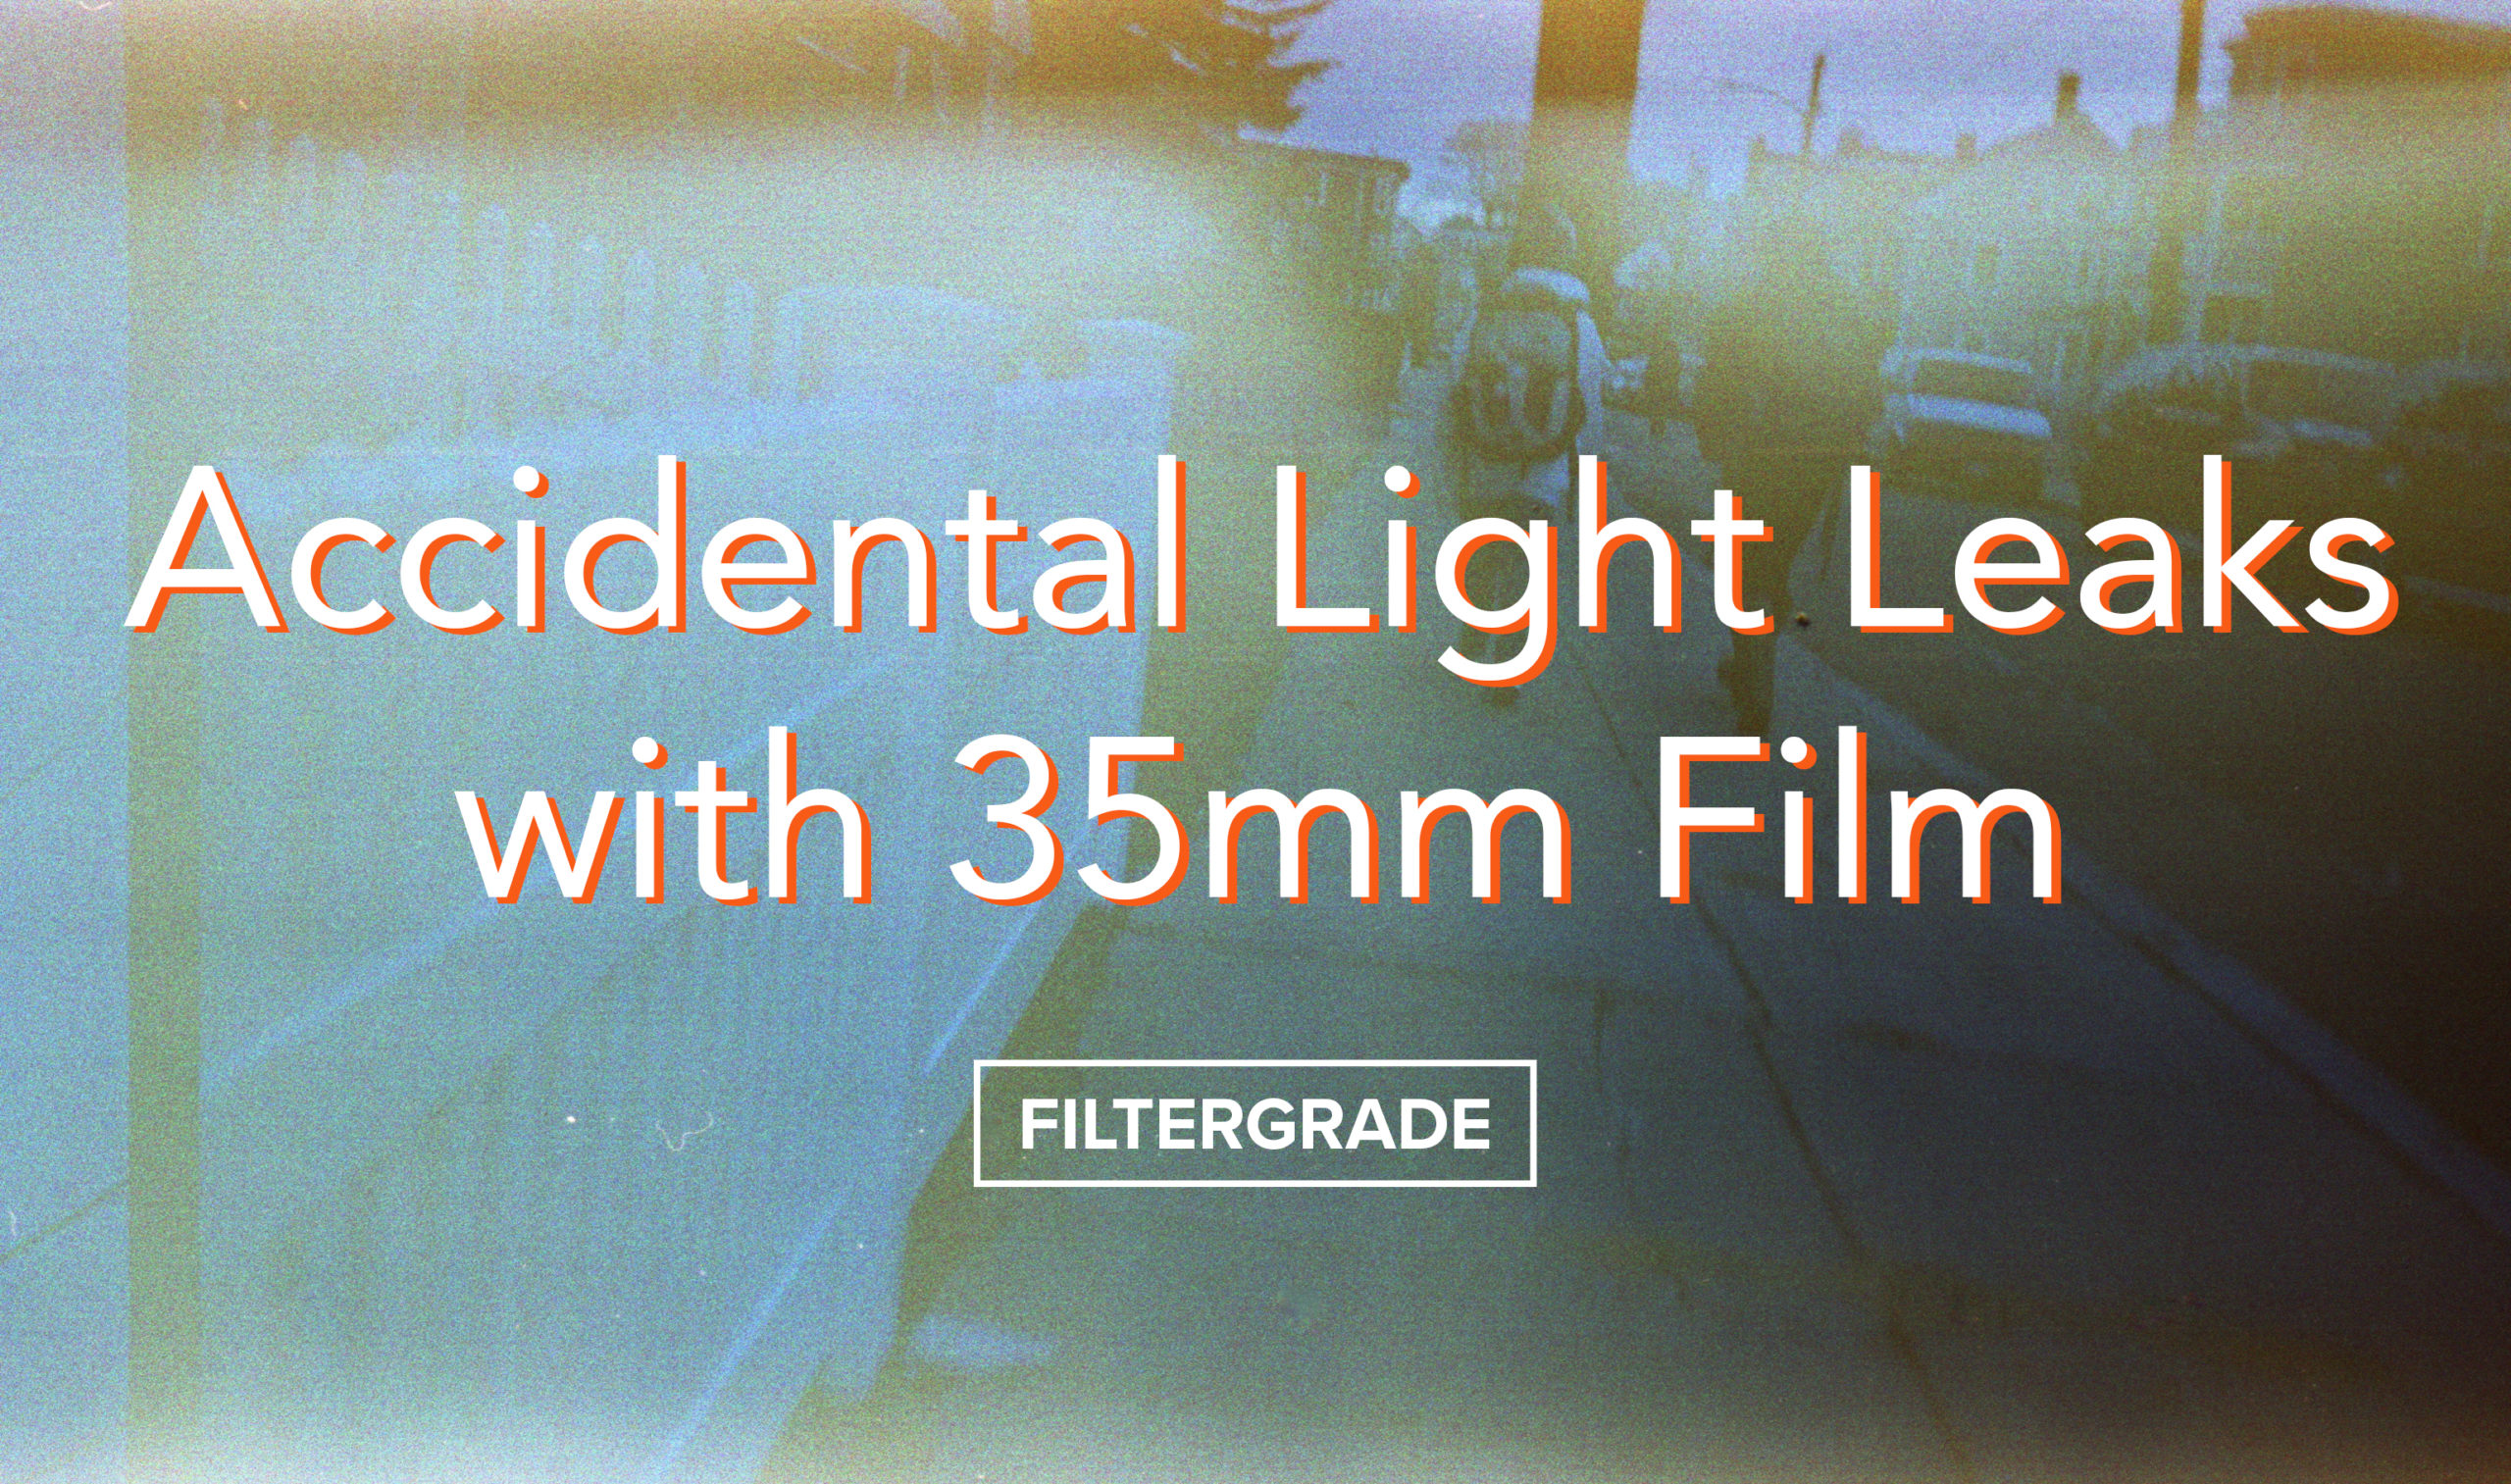 Accidental Light Leaks with 35mm Film - FilterGrade